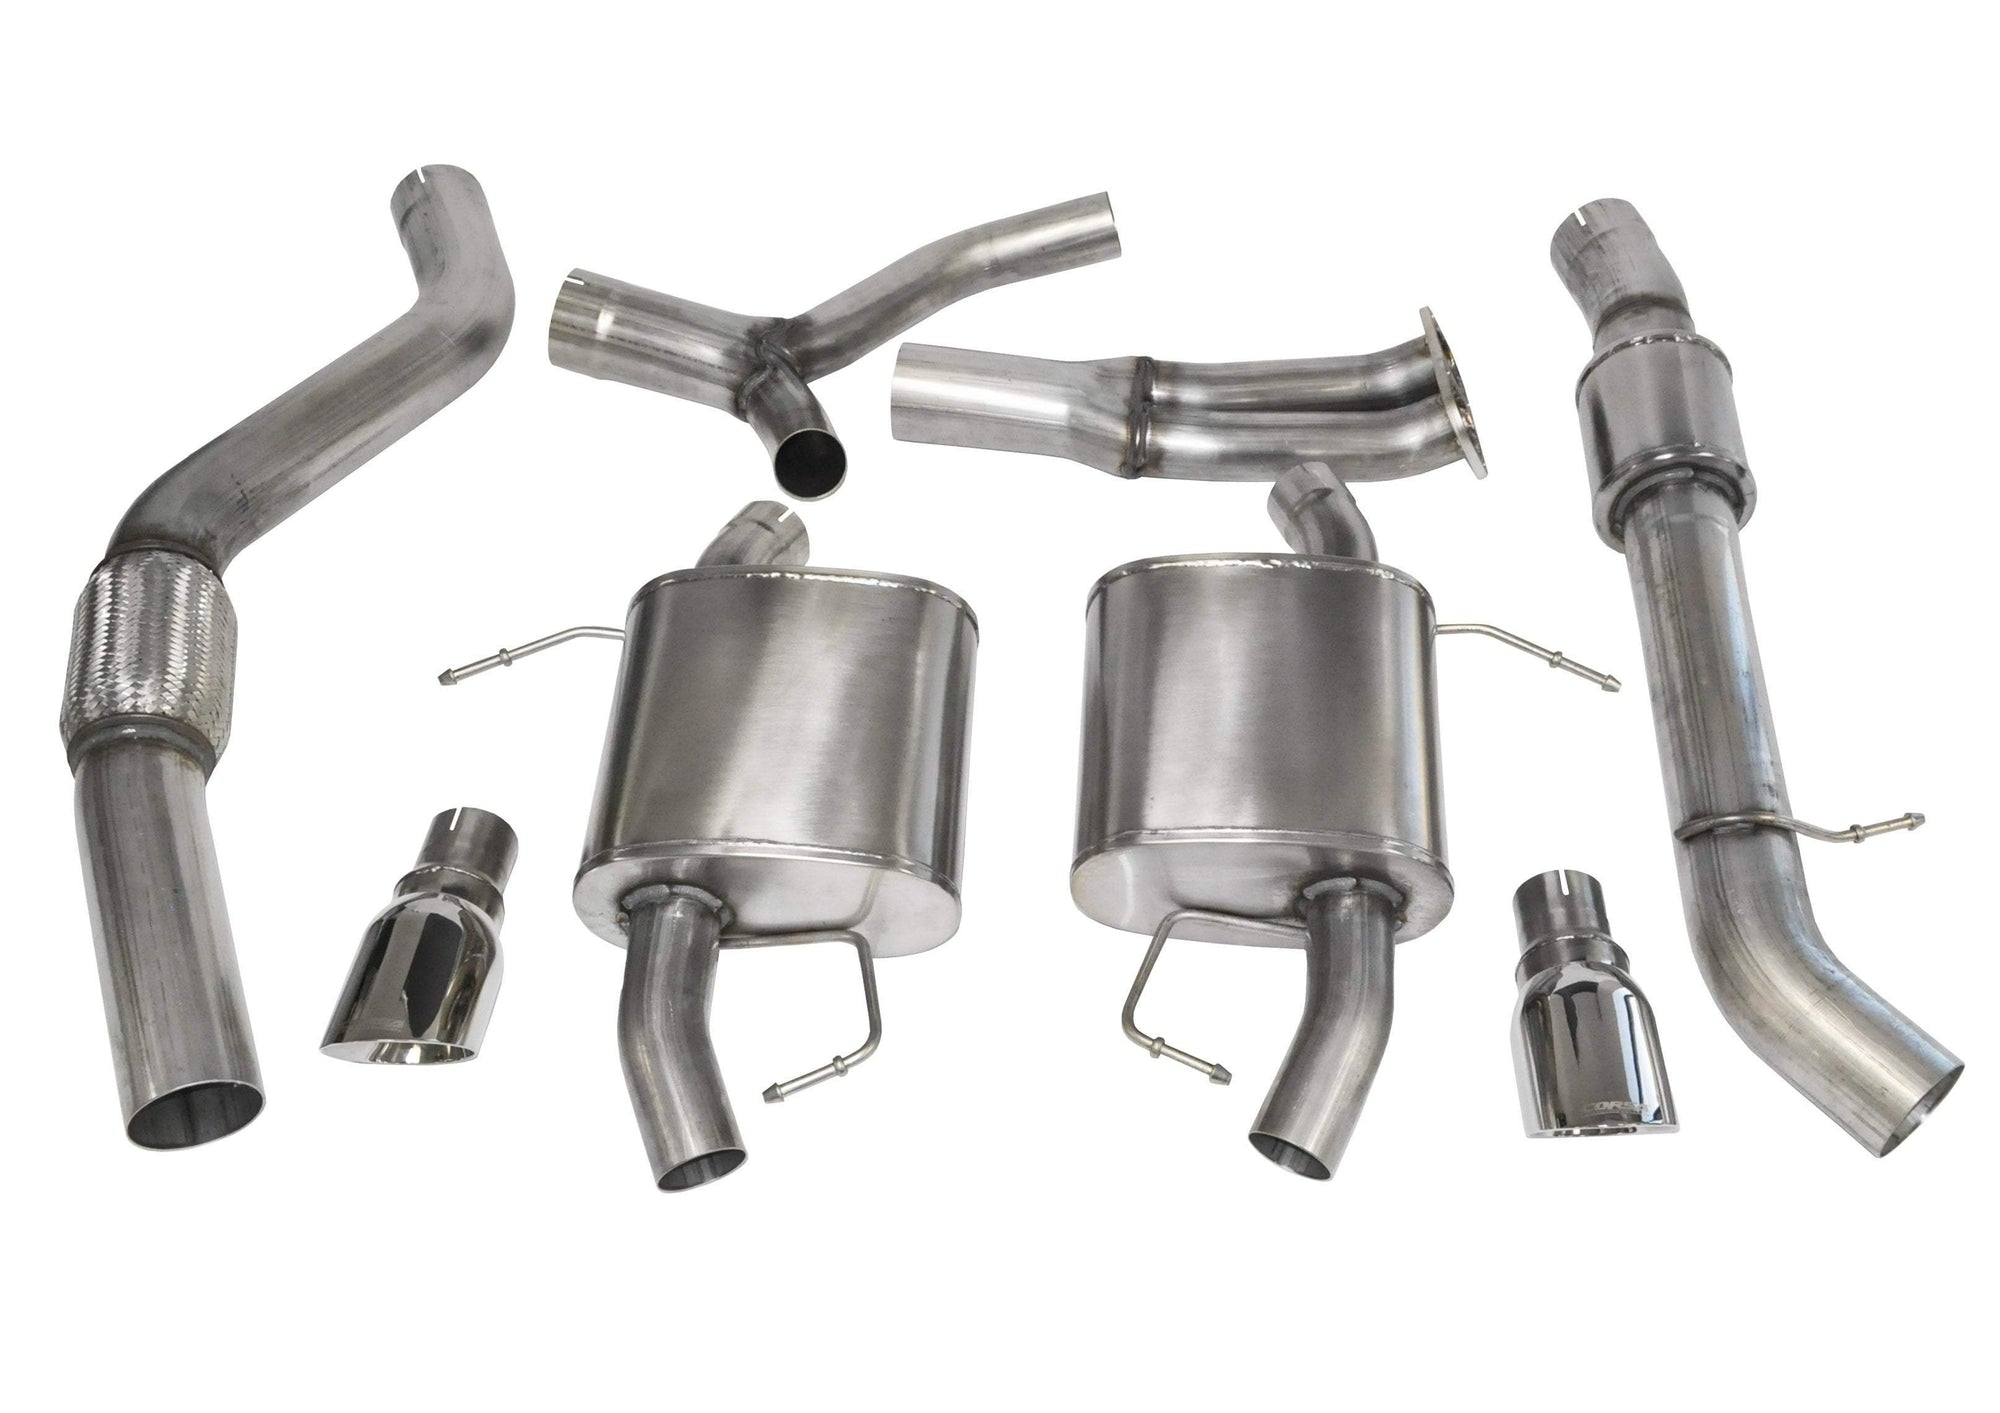 "CORSA PERFORMANCE Cat-Back Exhaust Polished / Sport / Dual Rear - Single 4.0in 3.5"" Dual Rear Exit Cat-Back Exhaust System with 4.0"" Tips (14861) Sport Sound Level"